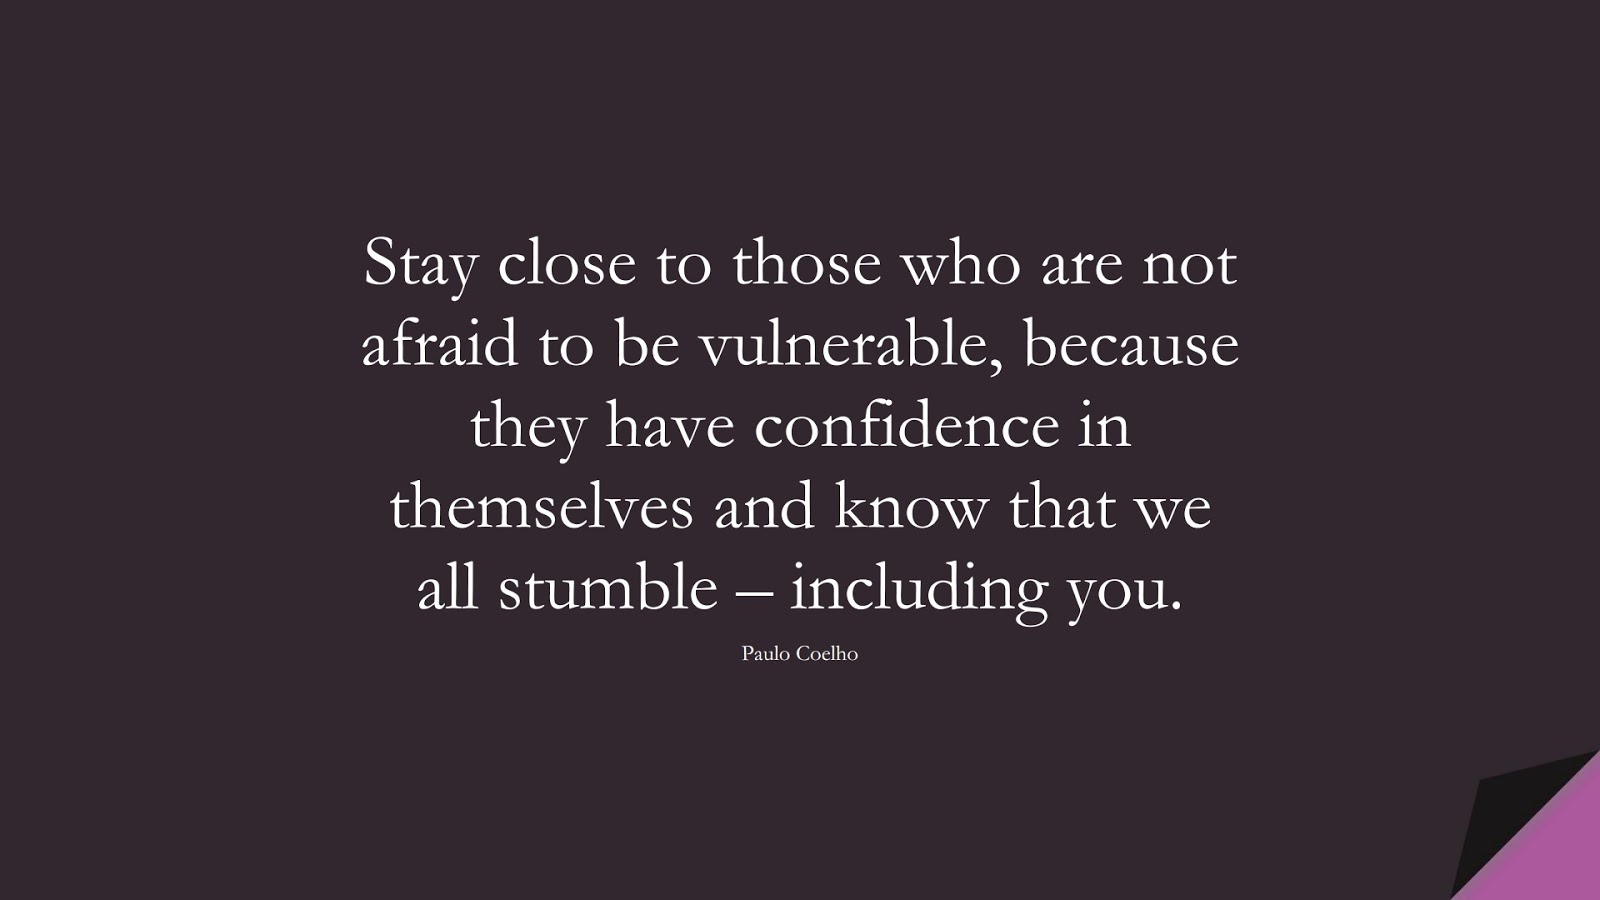 Stay close to those who are not afraid to be vulnerable, because they have confidence in themselves and know that we all stumble – including you. (Paulo Coelho);  #RelationshipQuotes